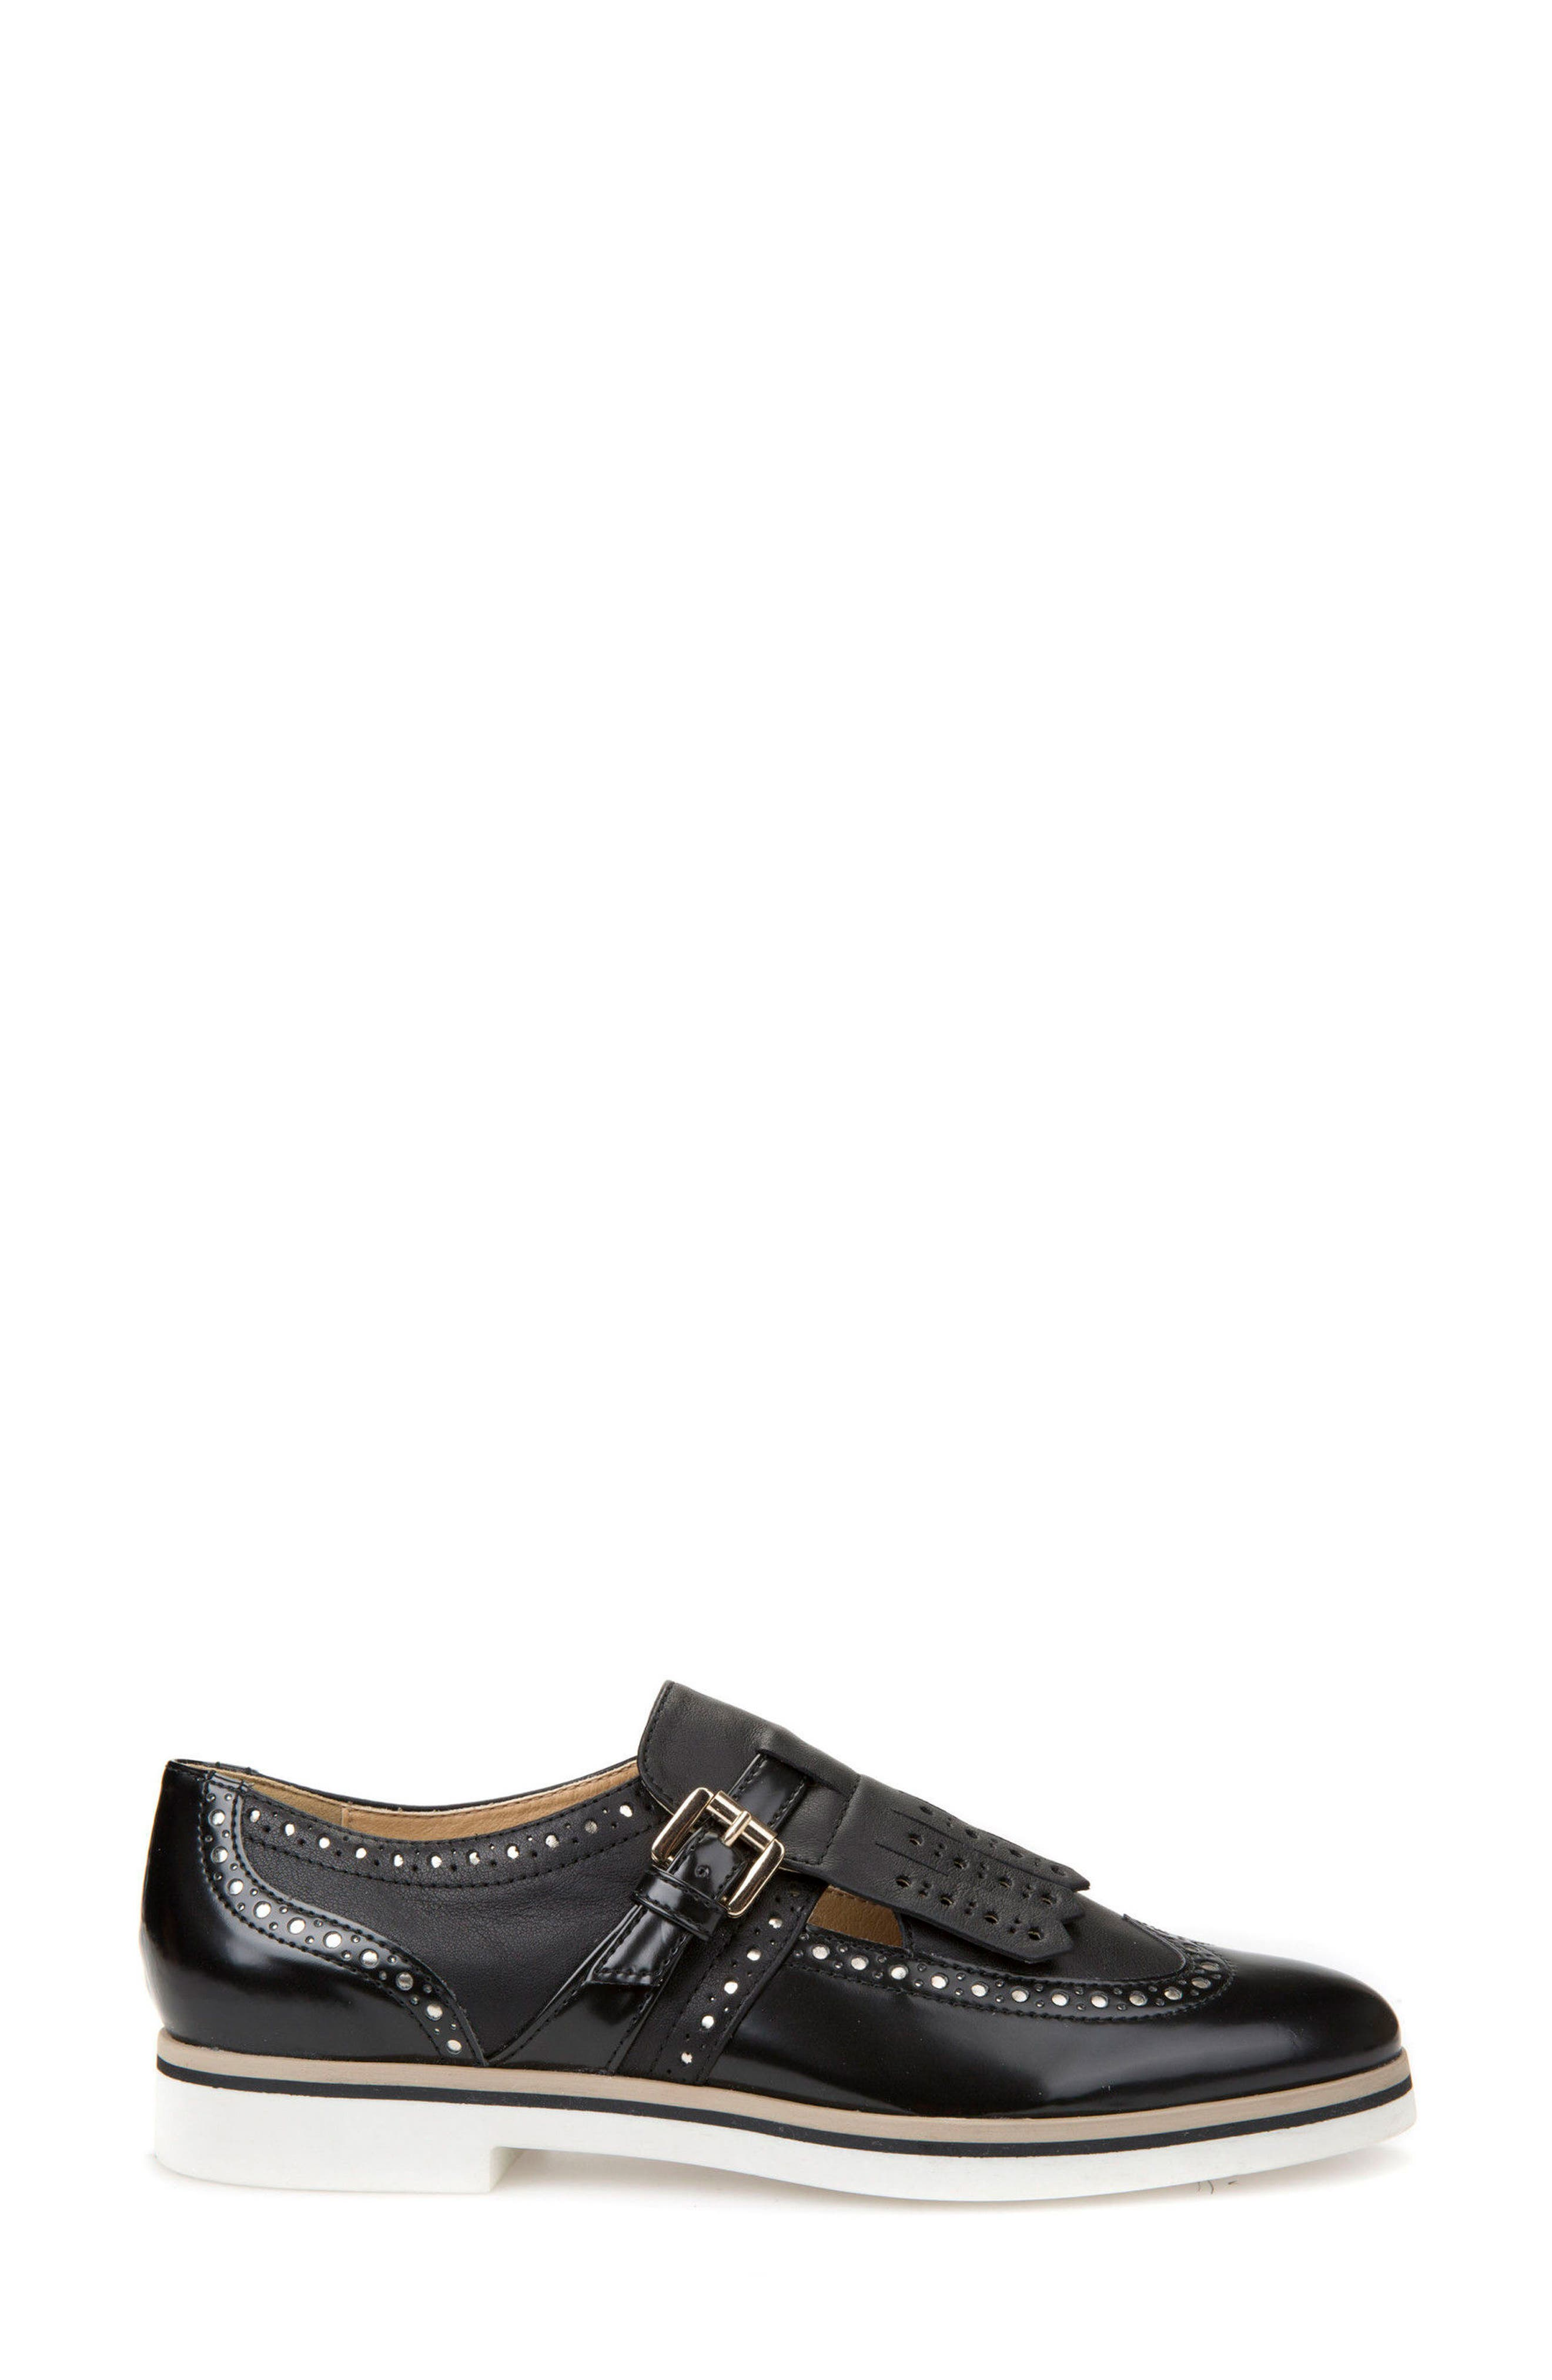 Janalee Cutout Loafer,                             Alternate thumbnail 3, color,                             Black Leather